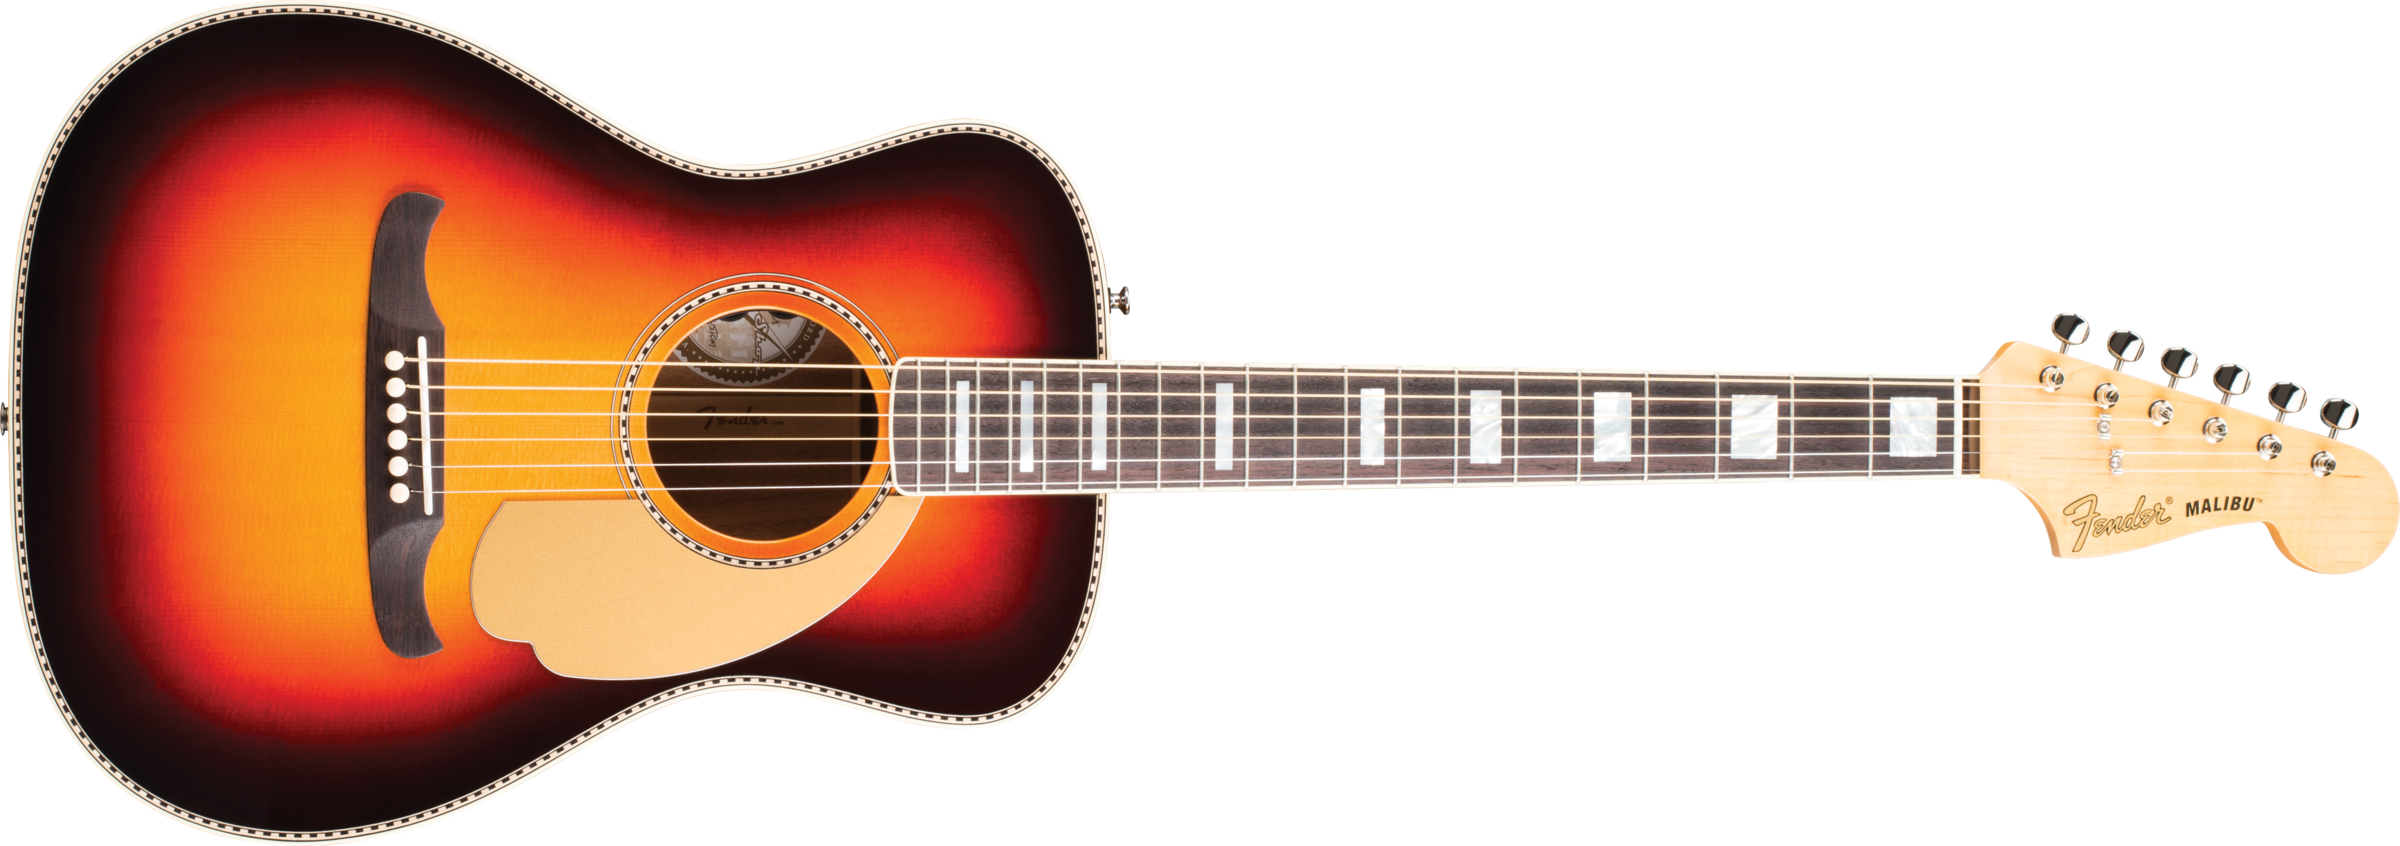 Malibu Pro Bolt On Folk Acoustic Guitars Fender Acoustic Guitars Fender Acoustic Guitar Fender Acoustic Fender Acoustic Electric Guitar